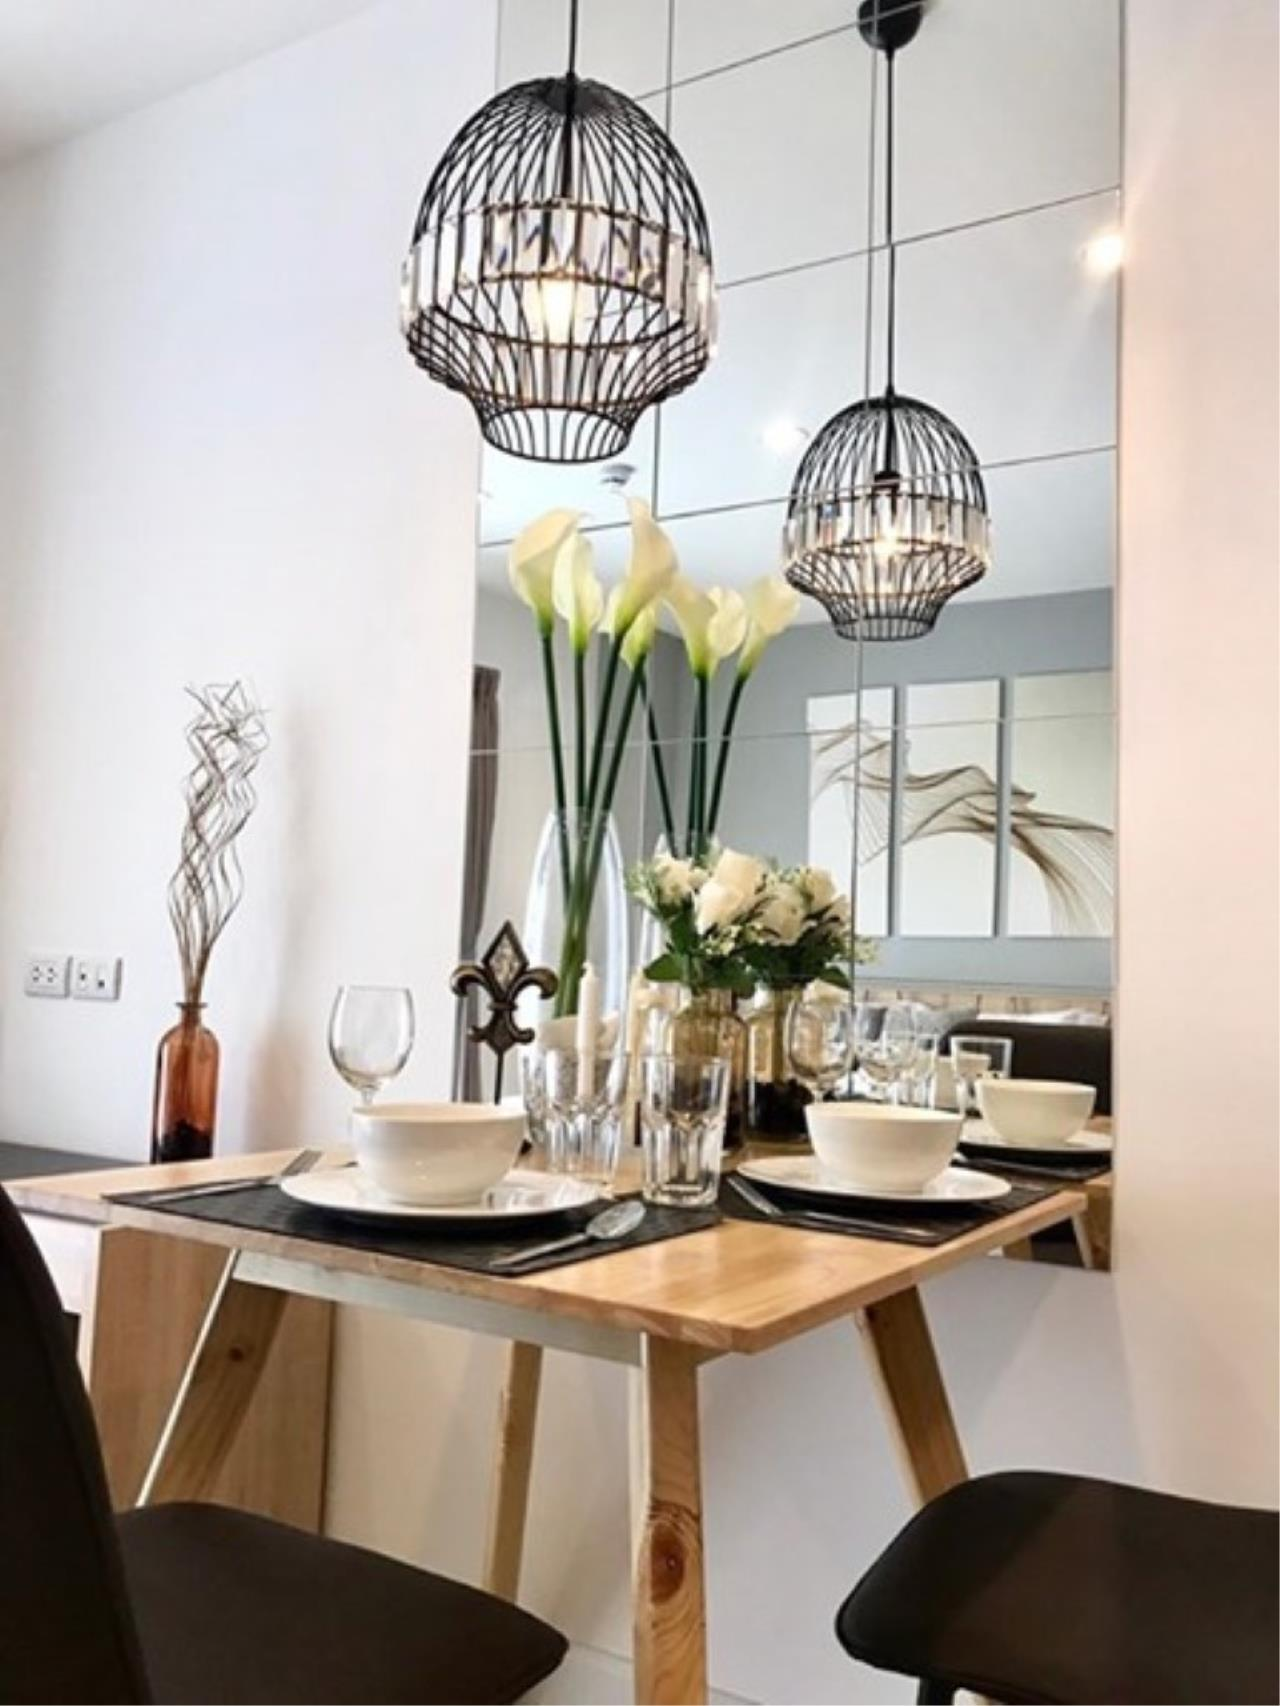 Century21 Skylux Agency's The Nest Sukhumvit 22 / Condo For Rent / 1 Bedroom / 25 SQM / MRT Queen Sirikit National Convention Centre / Bangkok 12